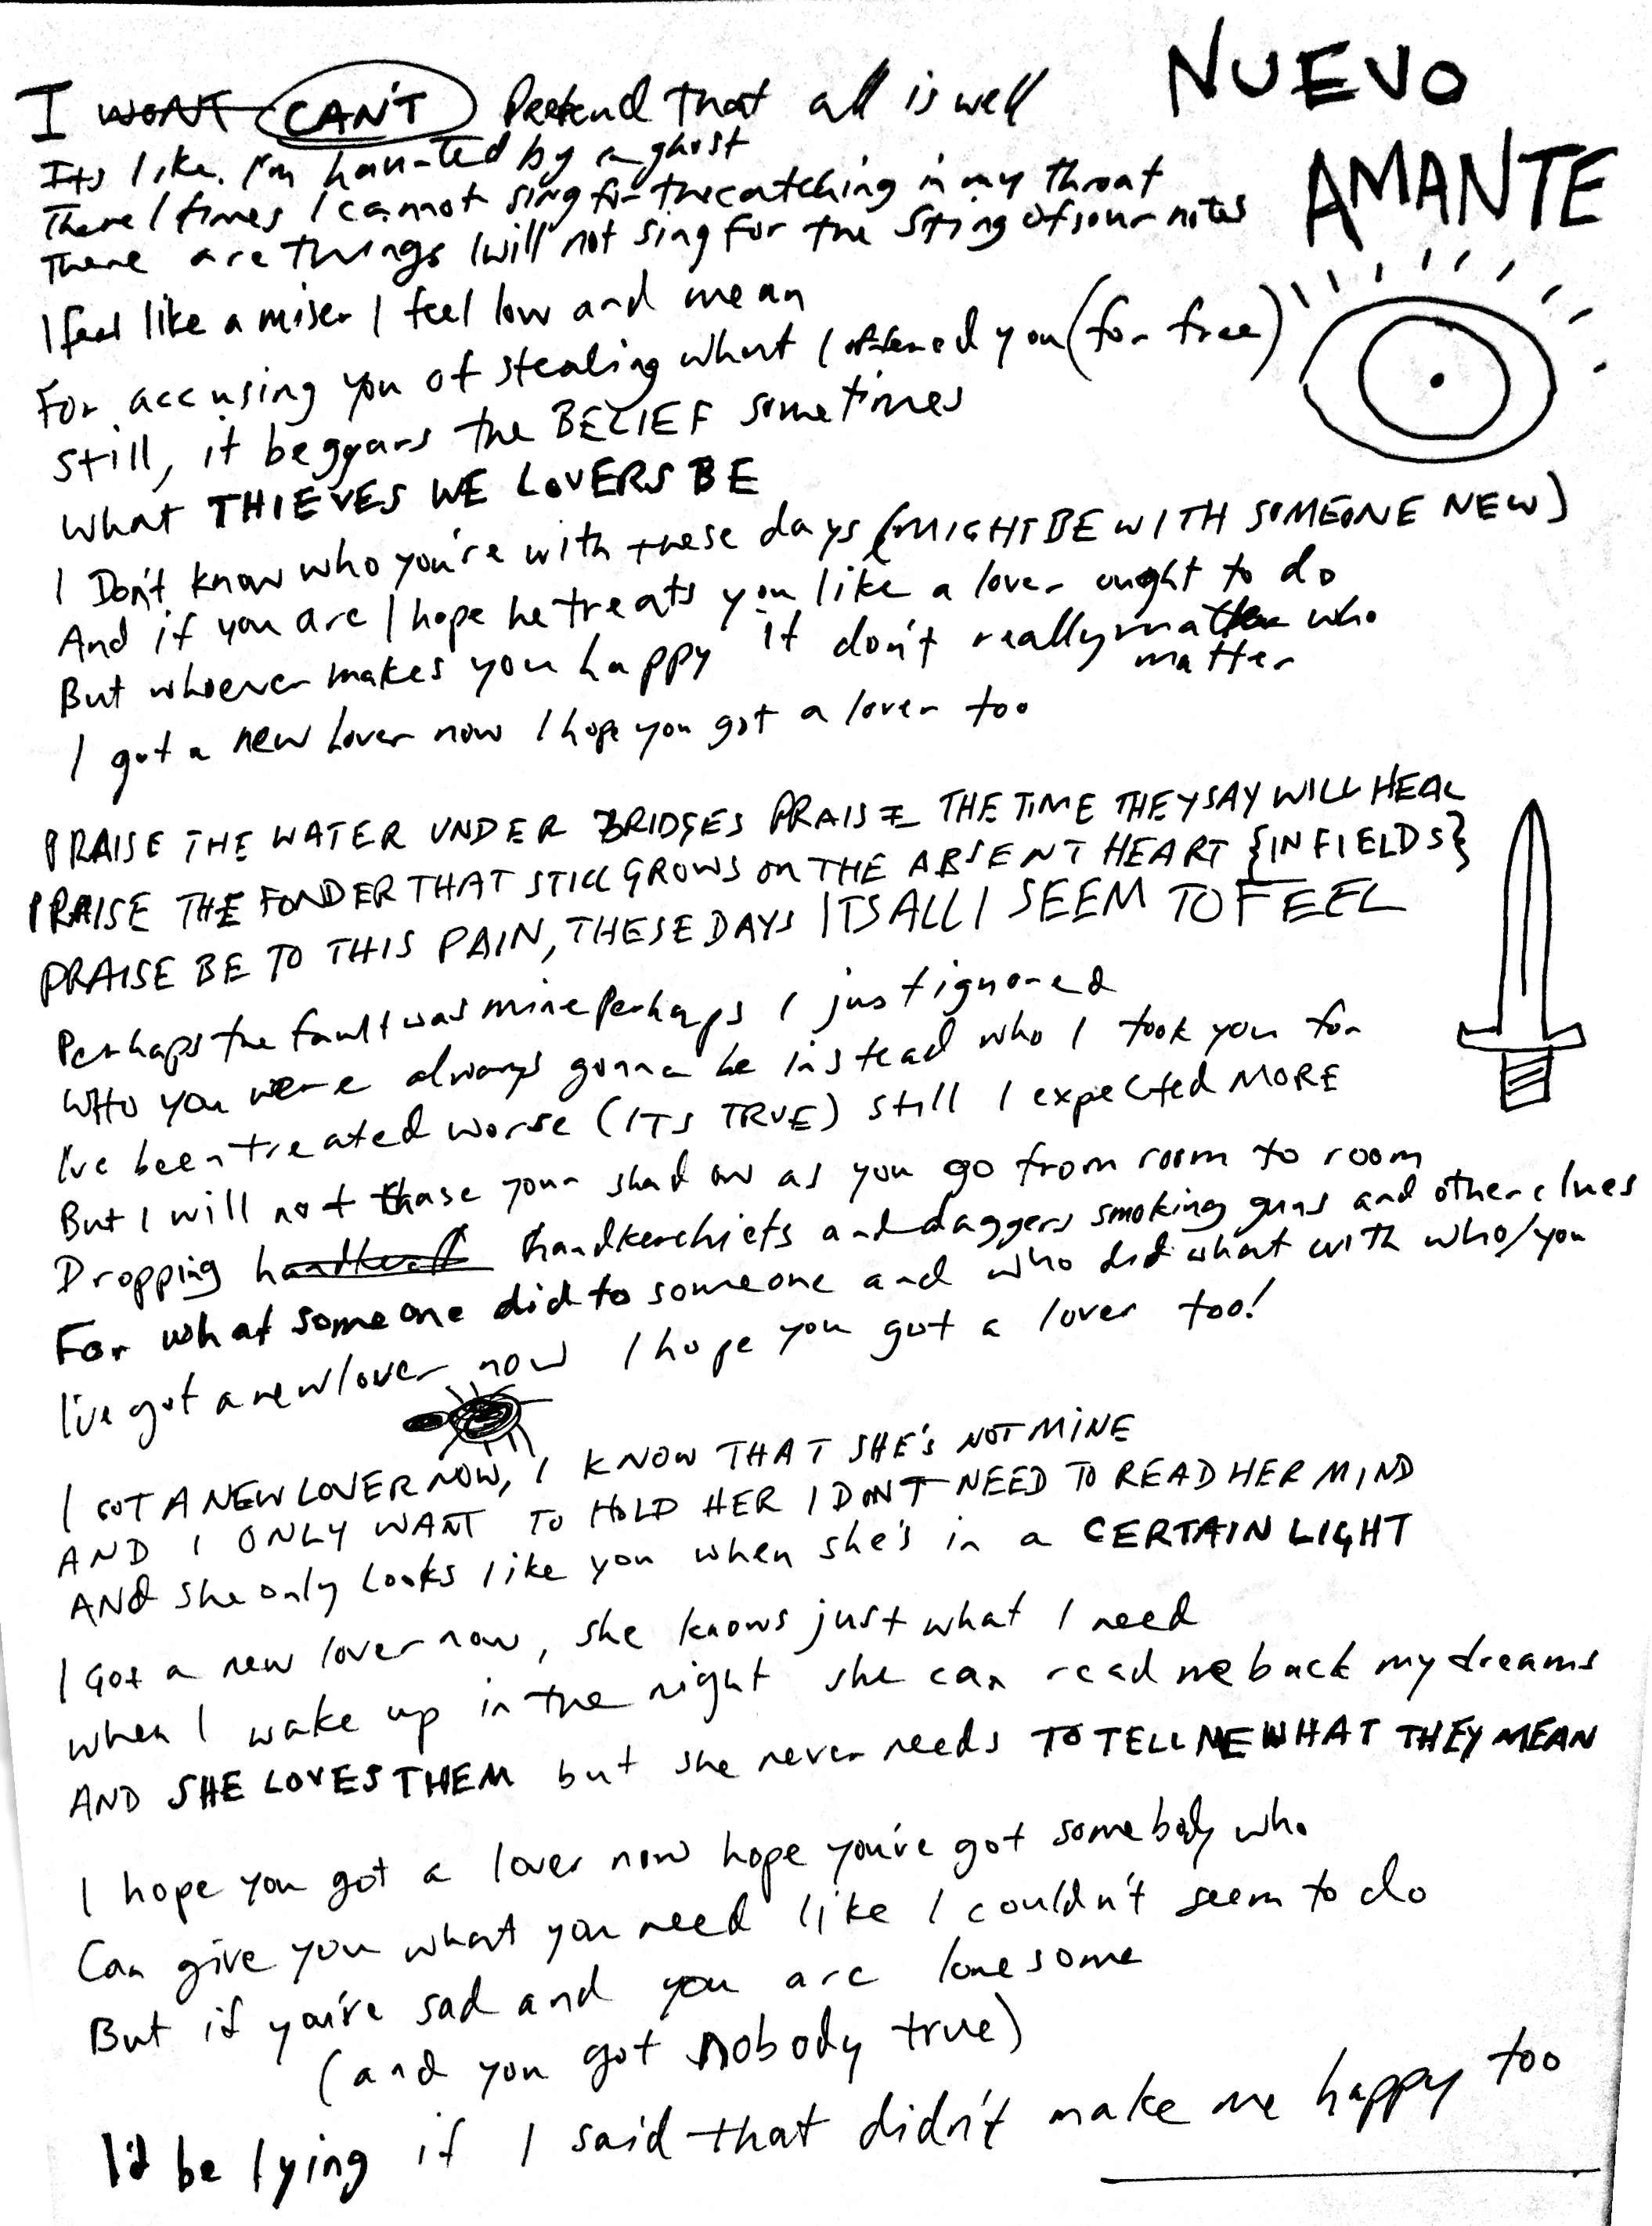 06 New Lover Lyrics